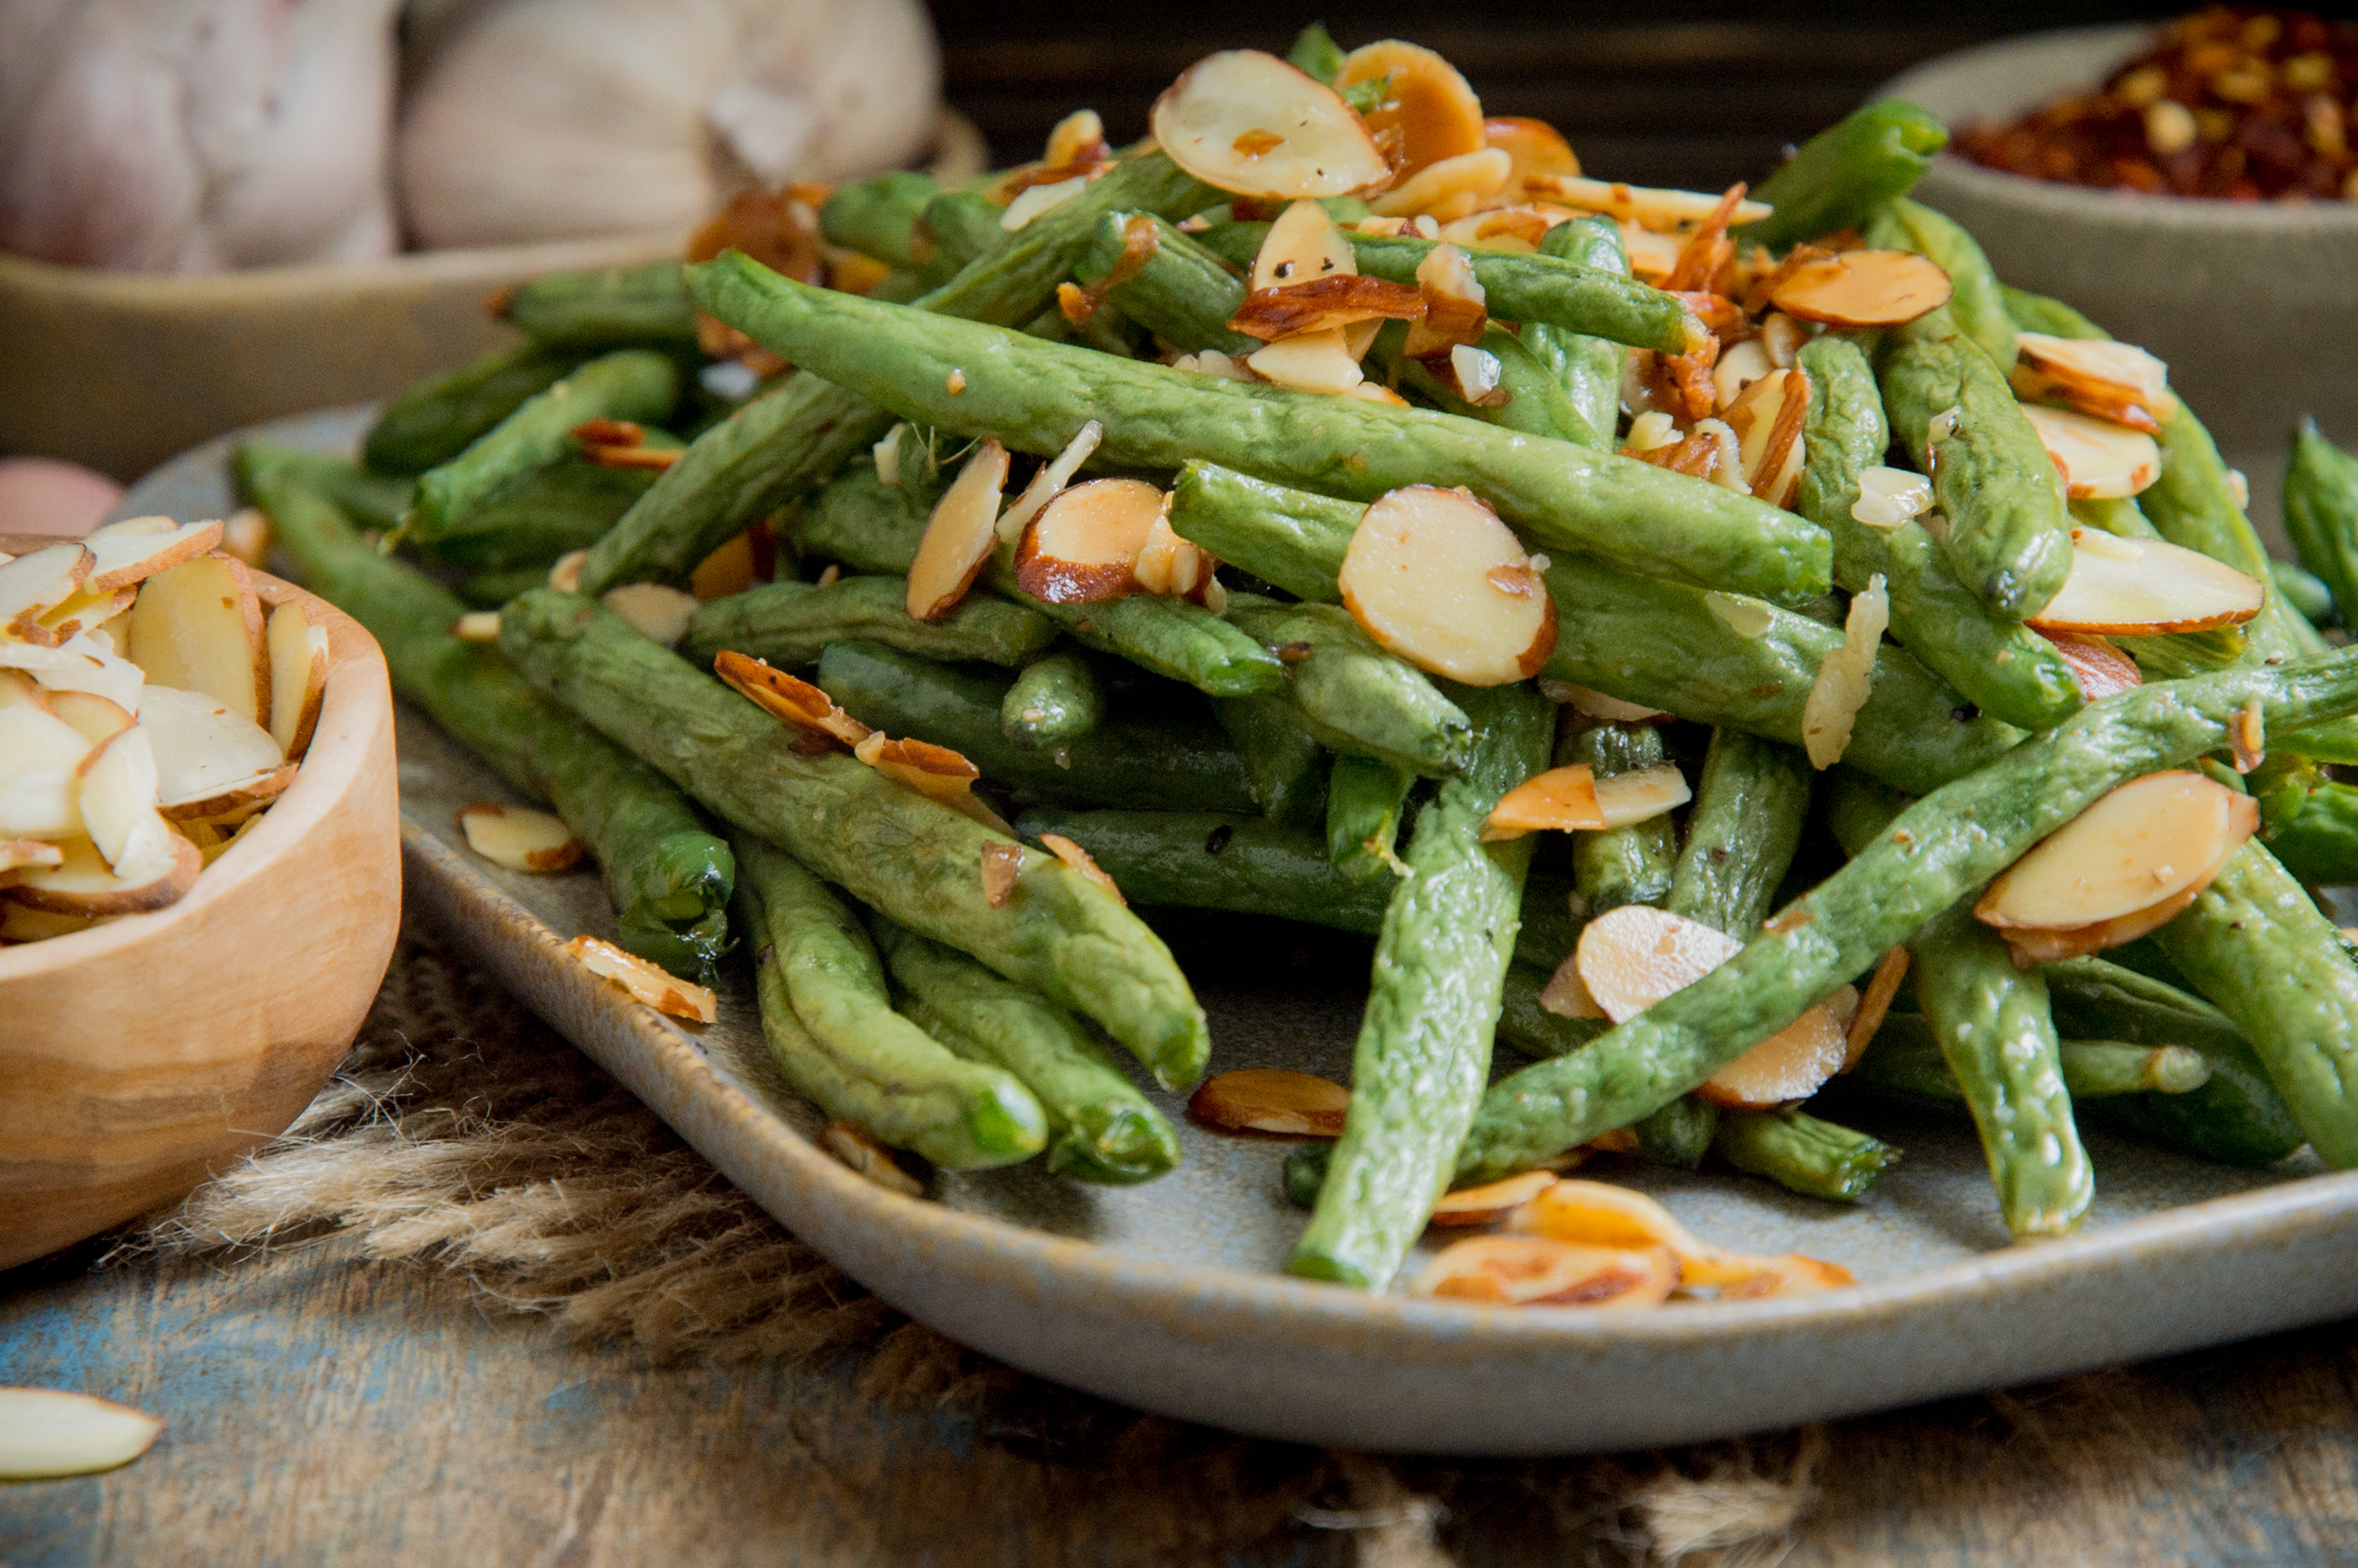 Low-Carb Garlic Almond Roasted Green Beans Recipe